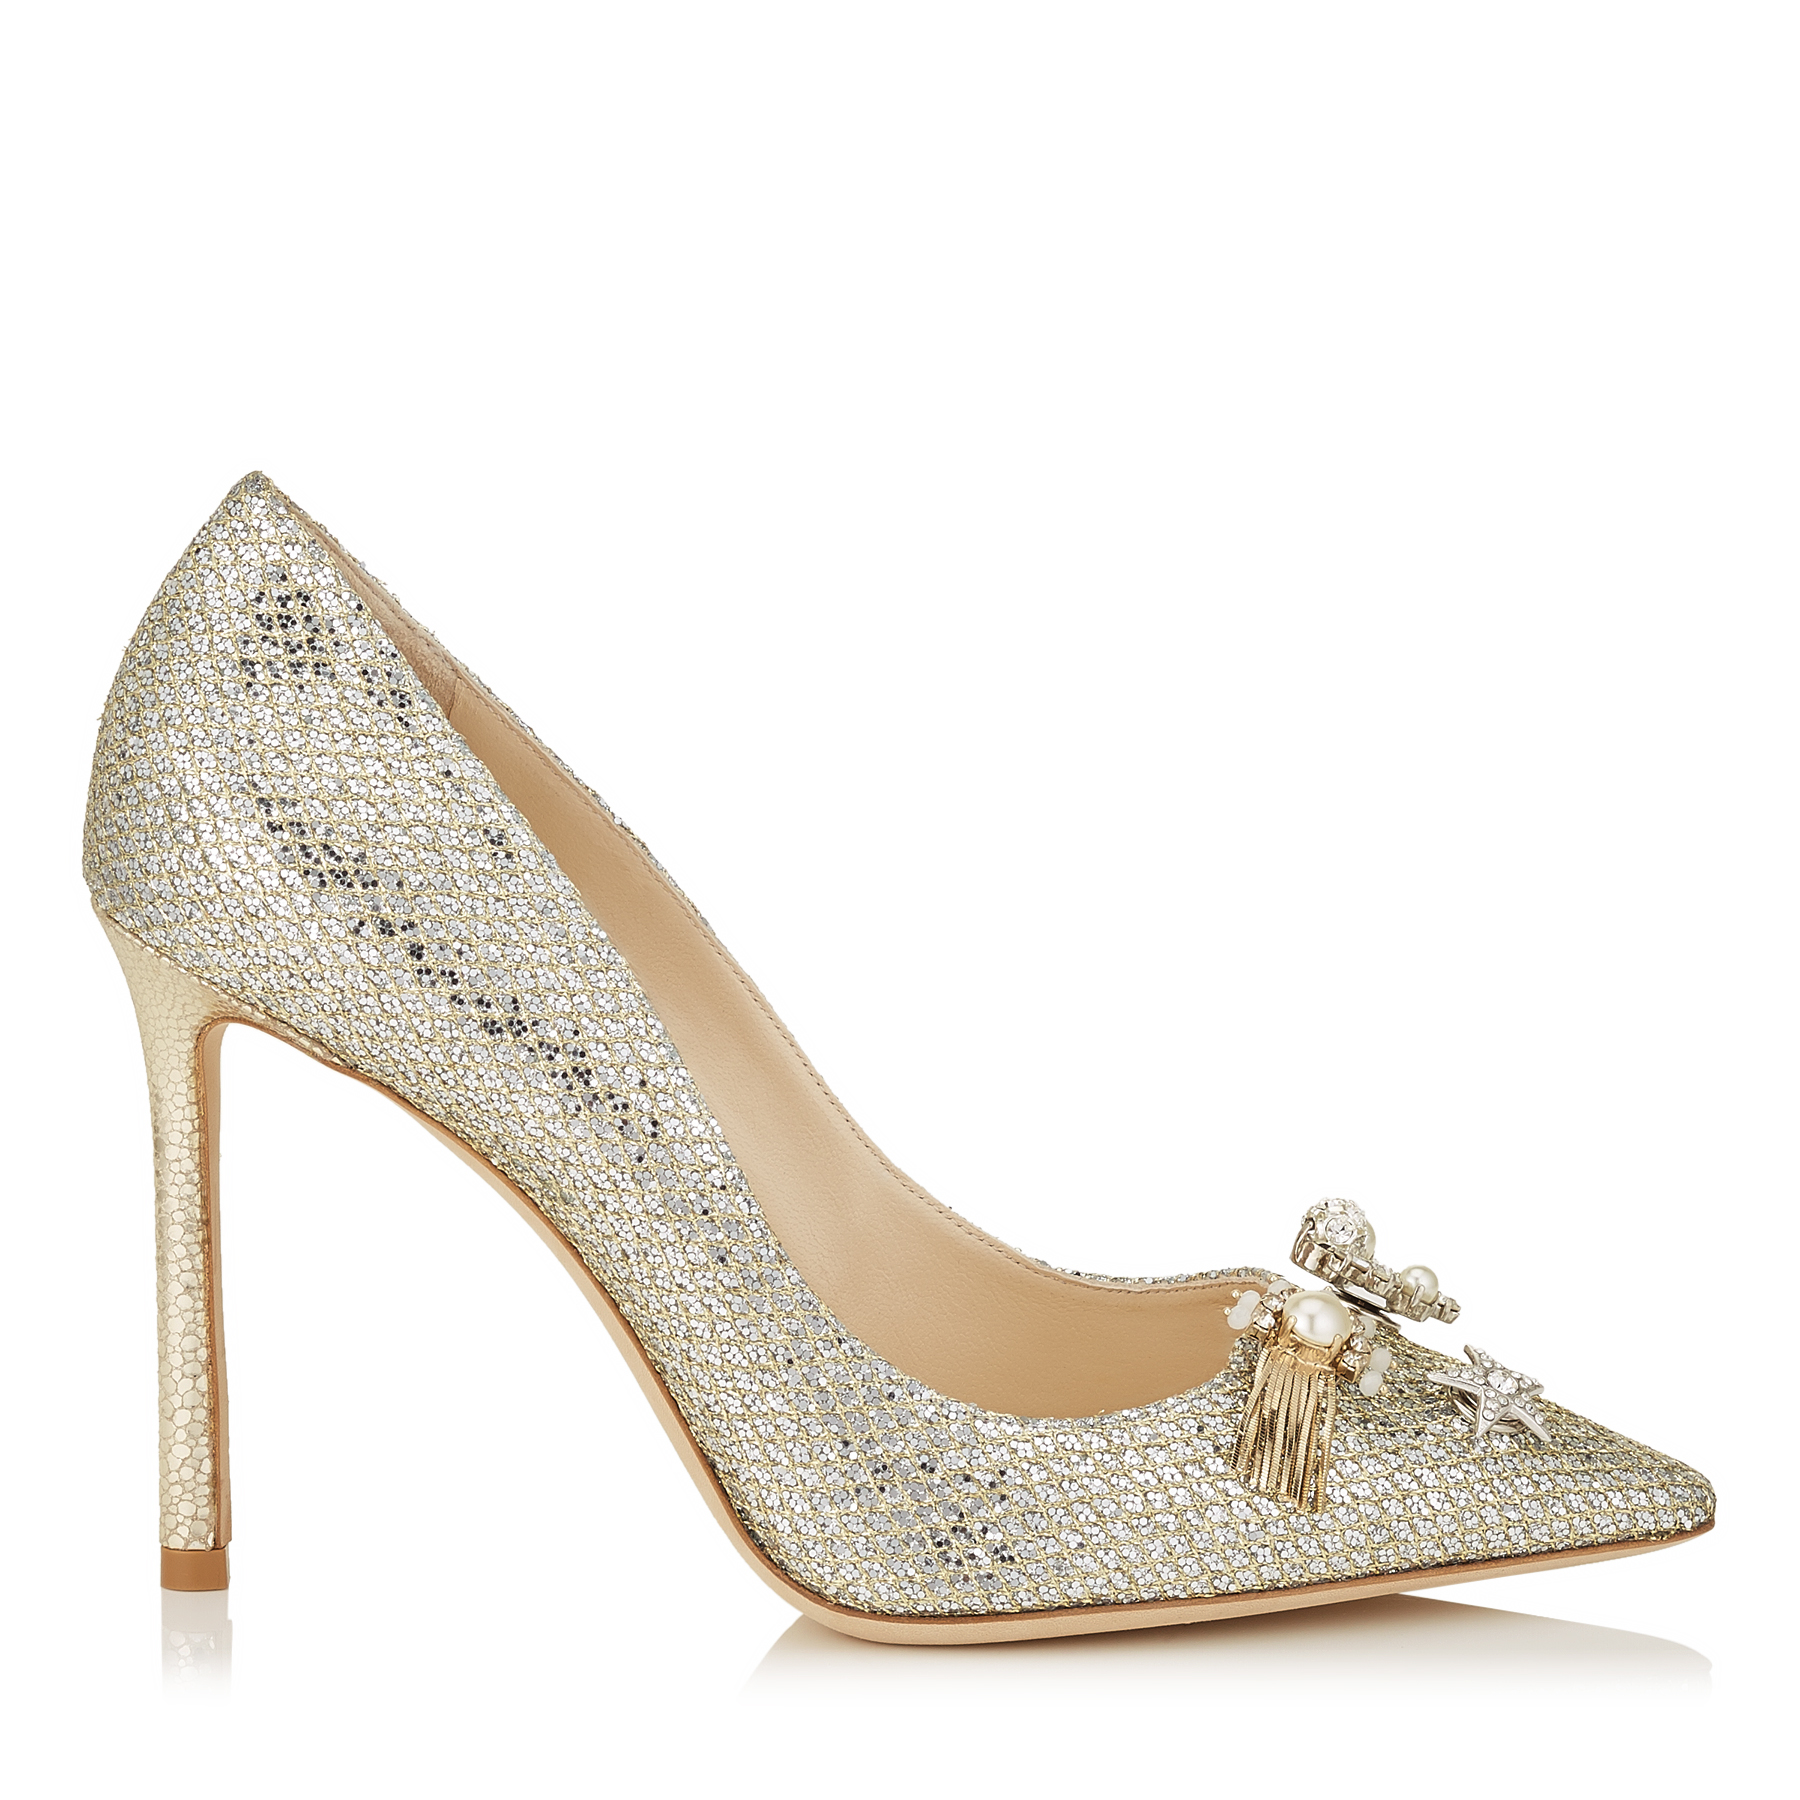 fffcee83286 JASMINE 100 Champagne Glitter Fabric Pointy Toe Pumps with Jewelled Buttons